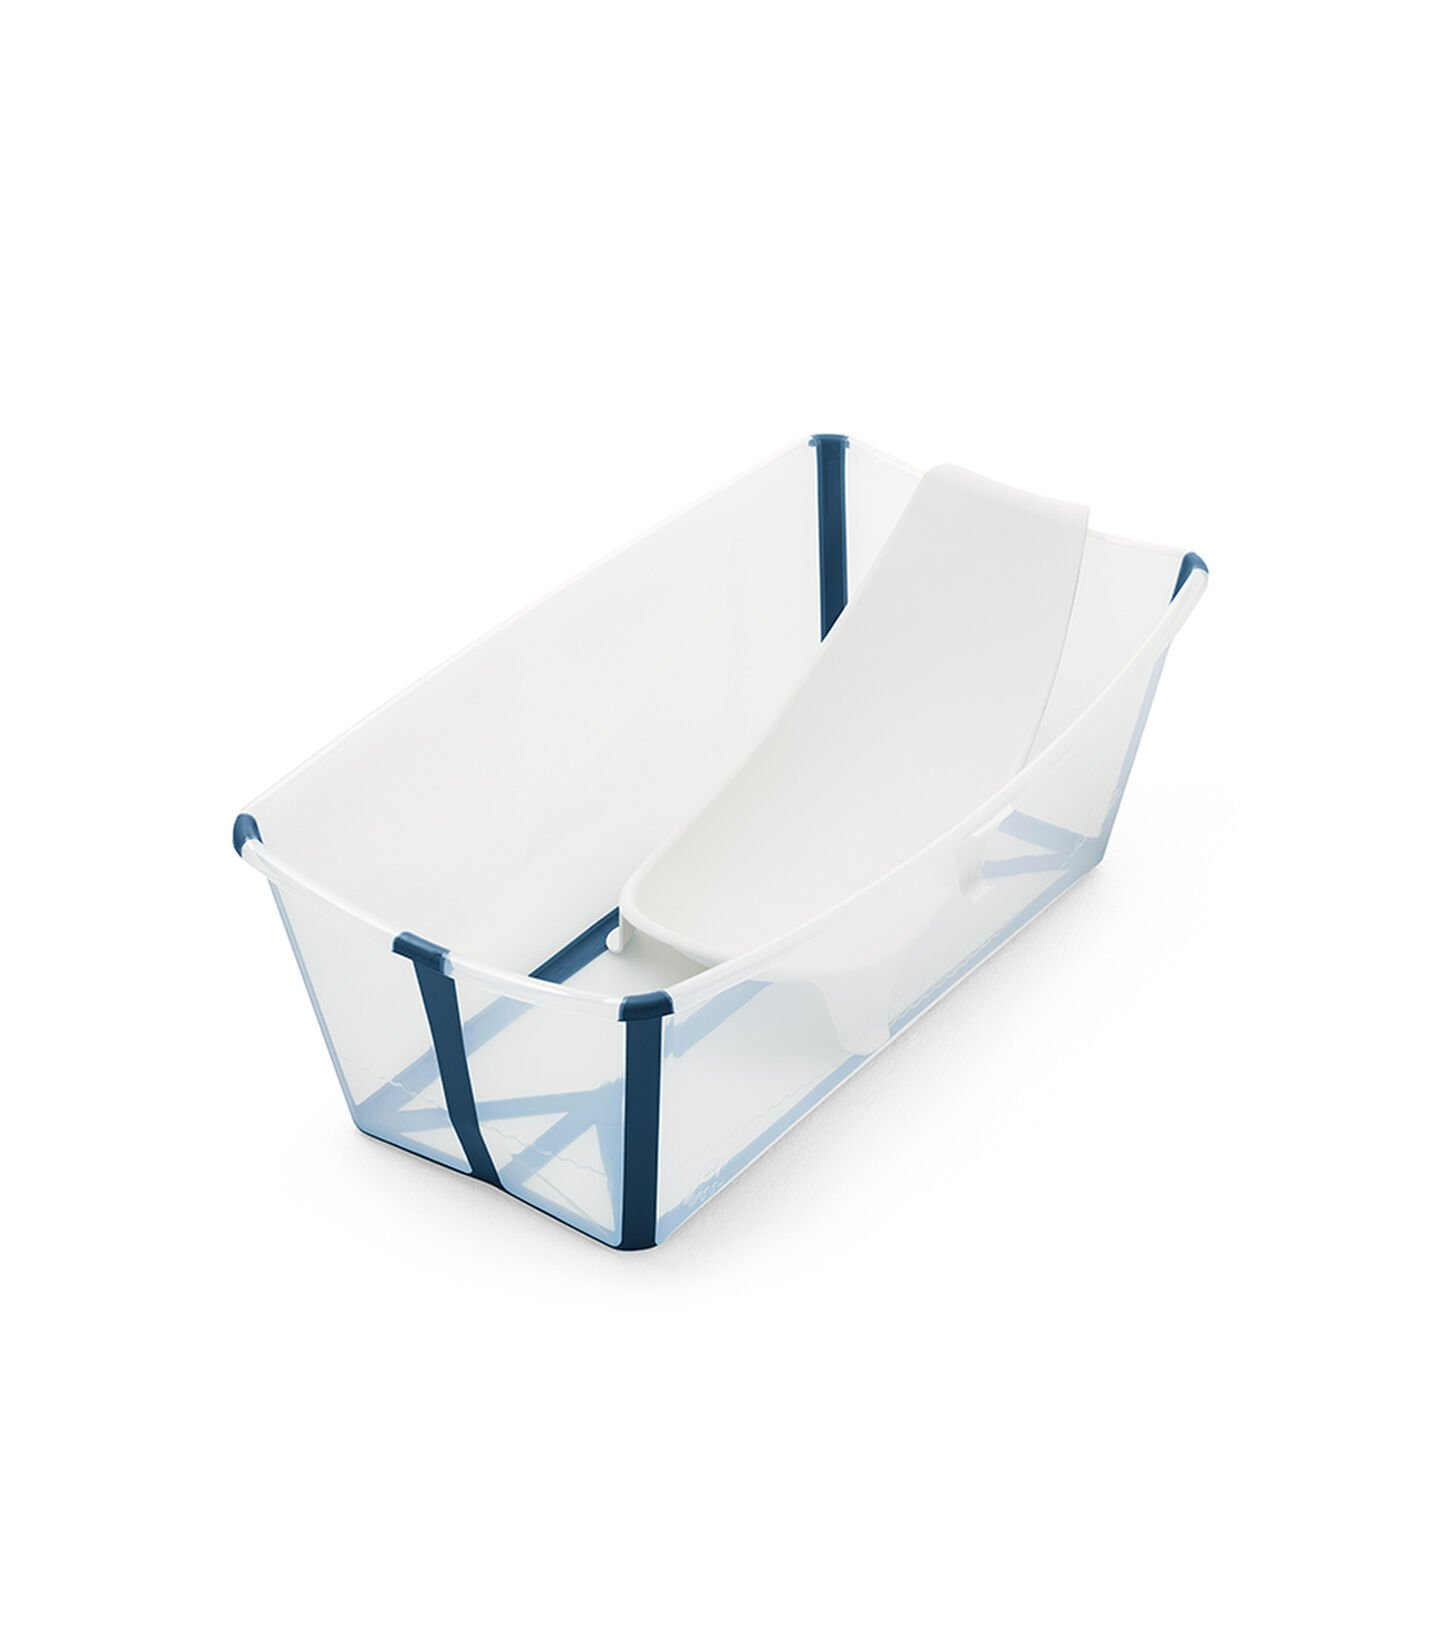 Stokke® Flexi Bath® bath tub, Transparent Blue with Newborn insert.